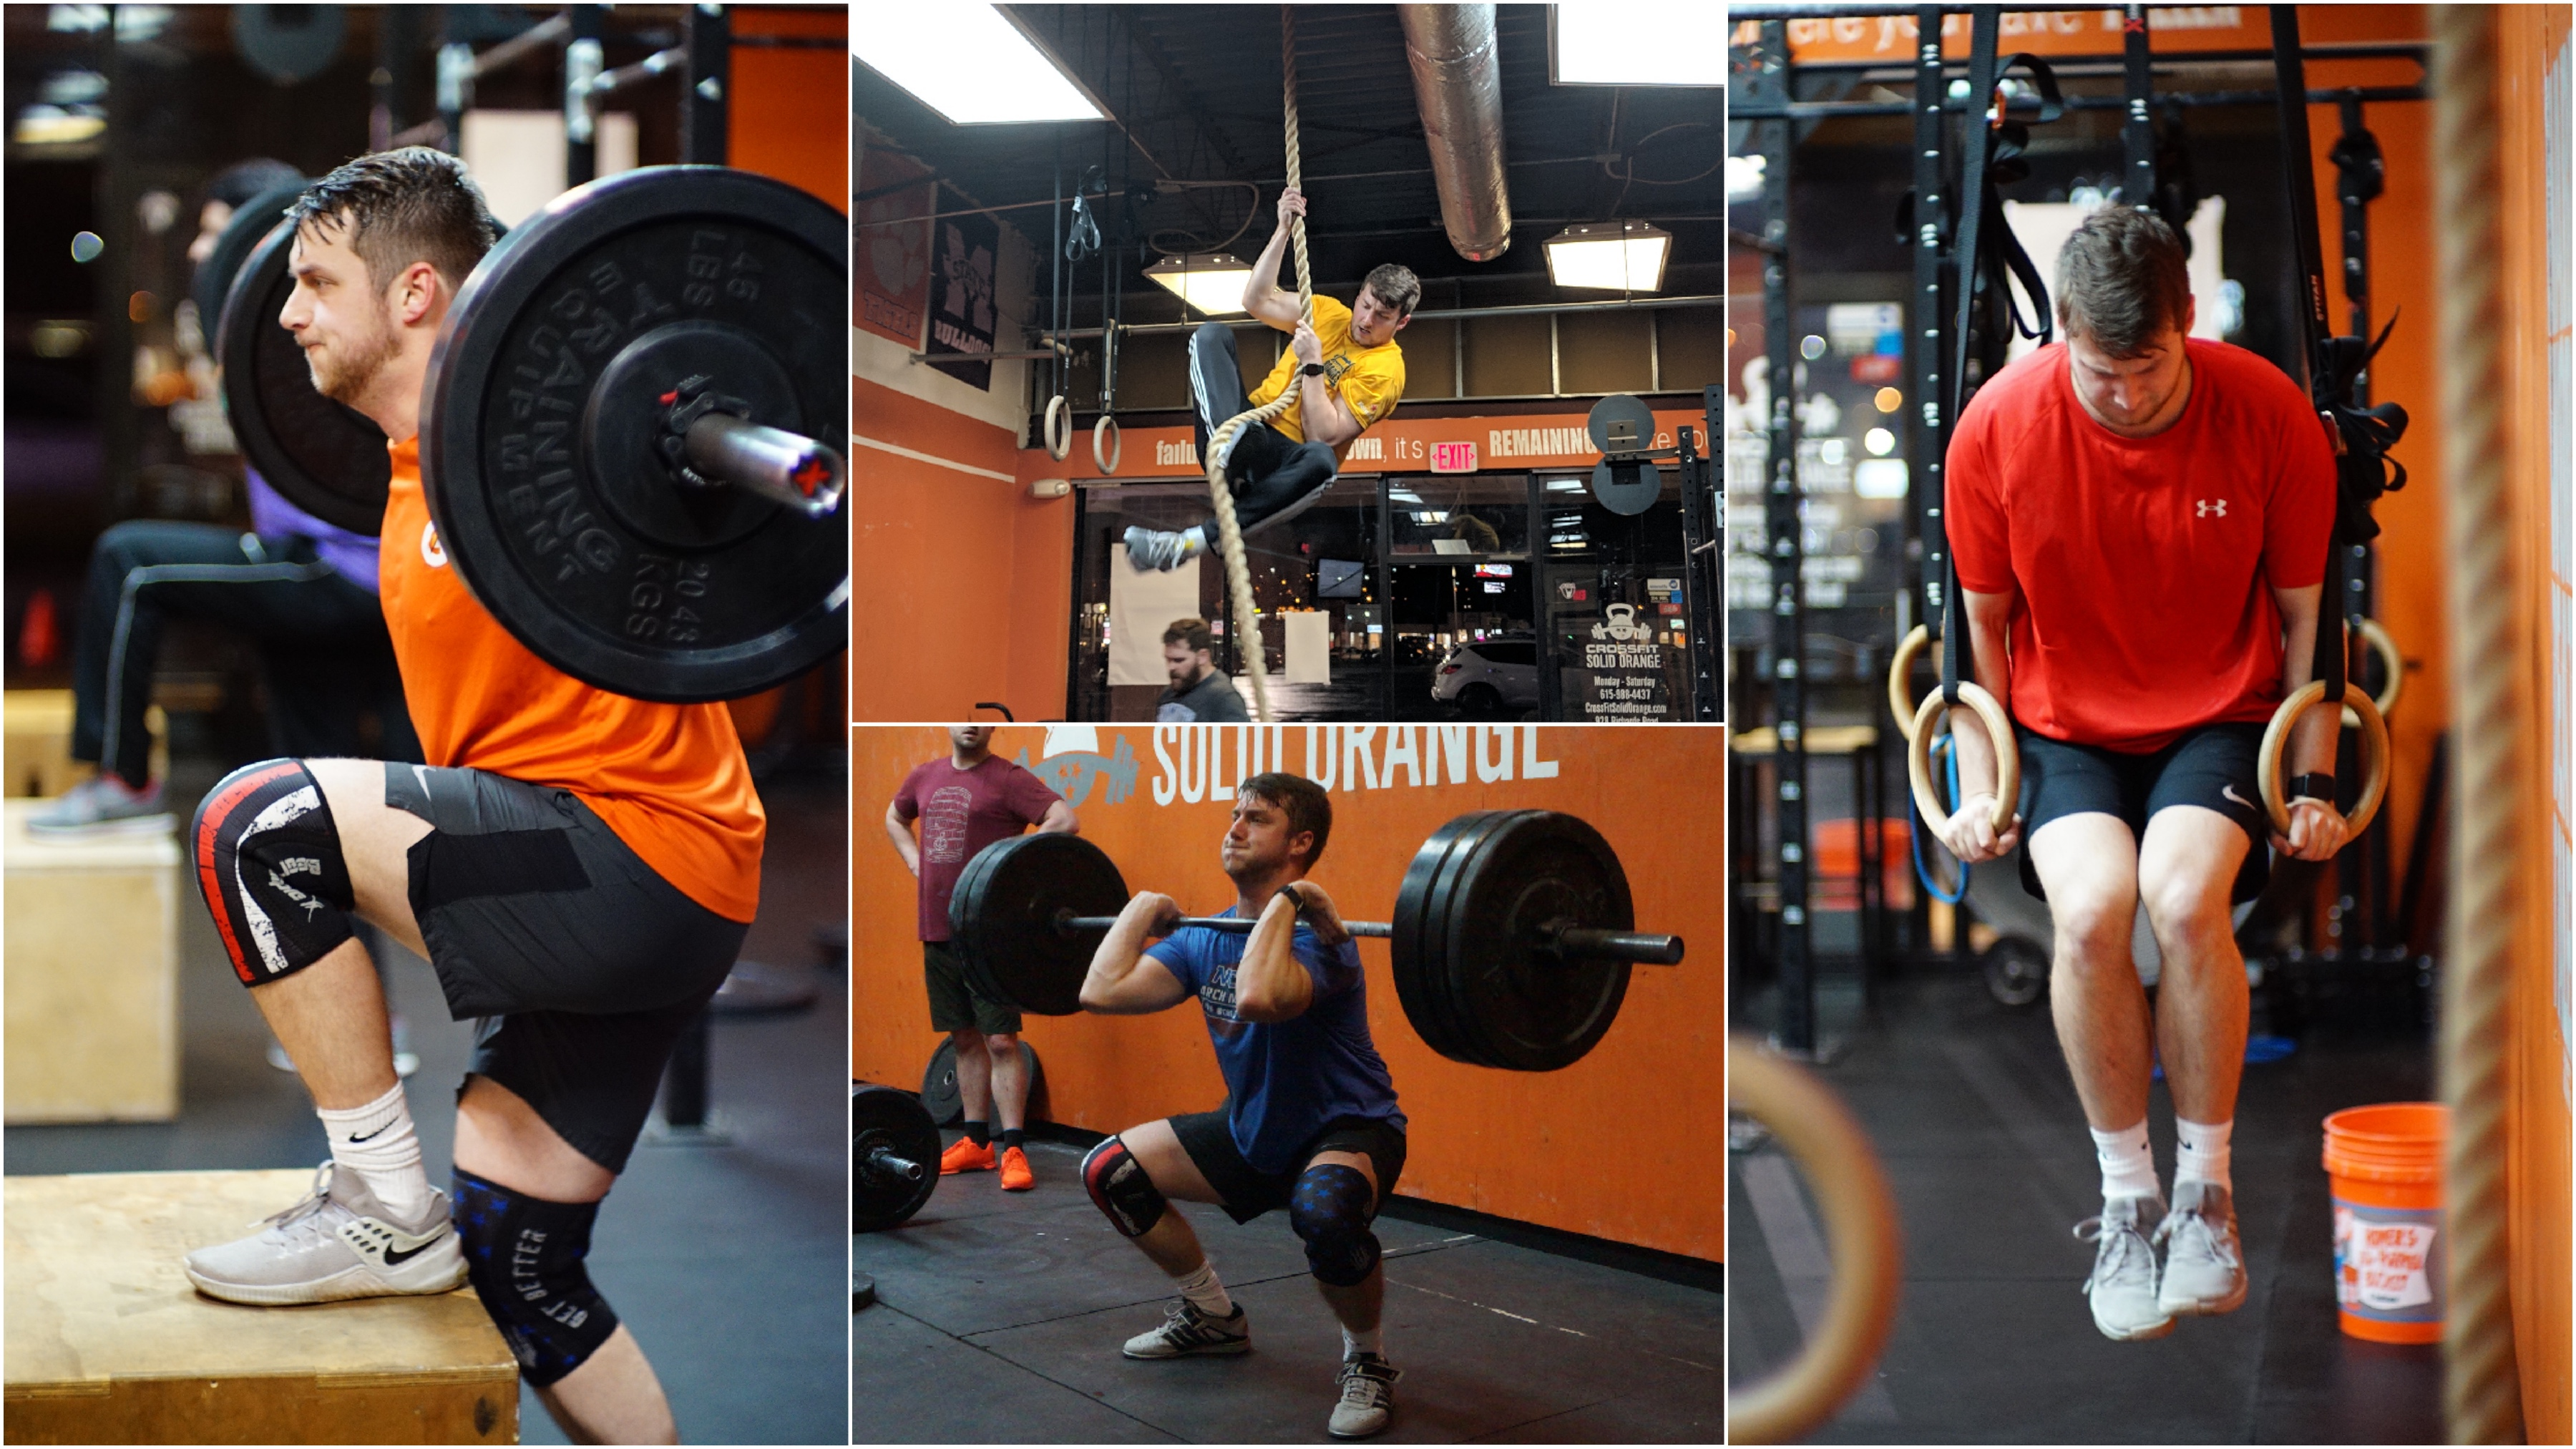 find group training antioch - Athlete of the Month: Aaron Burrell